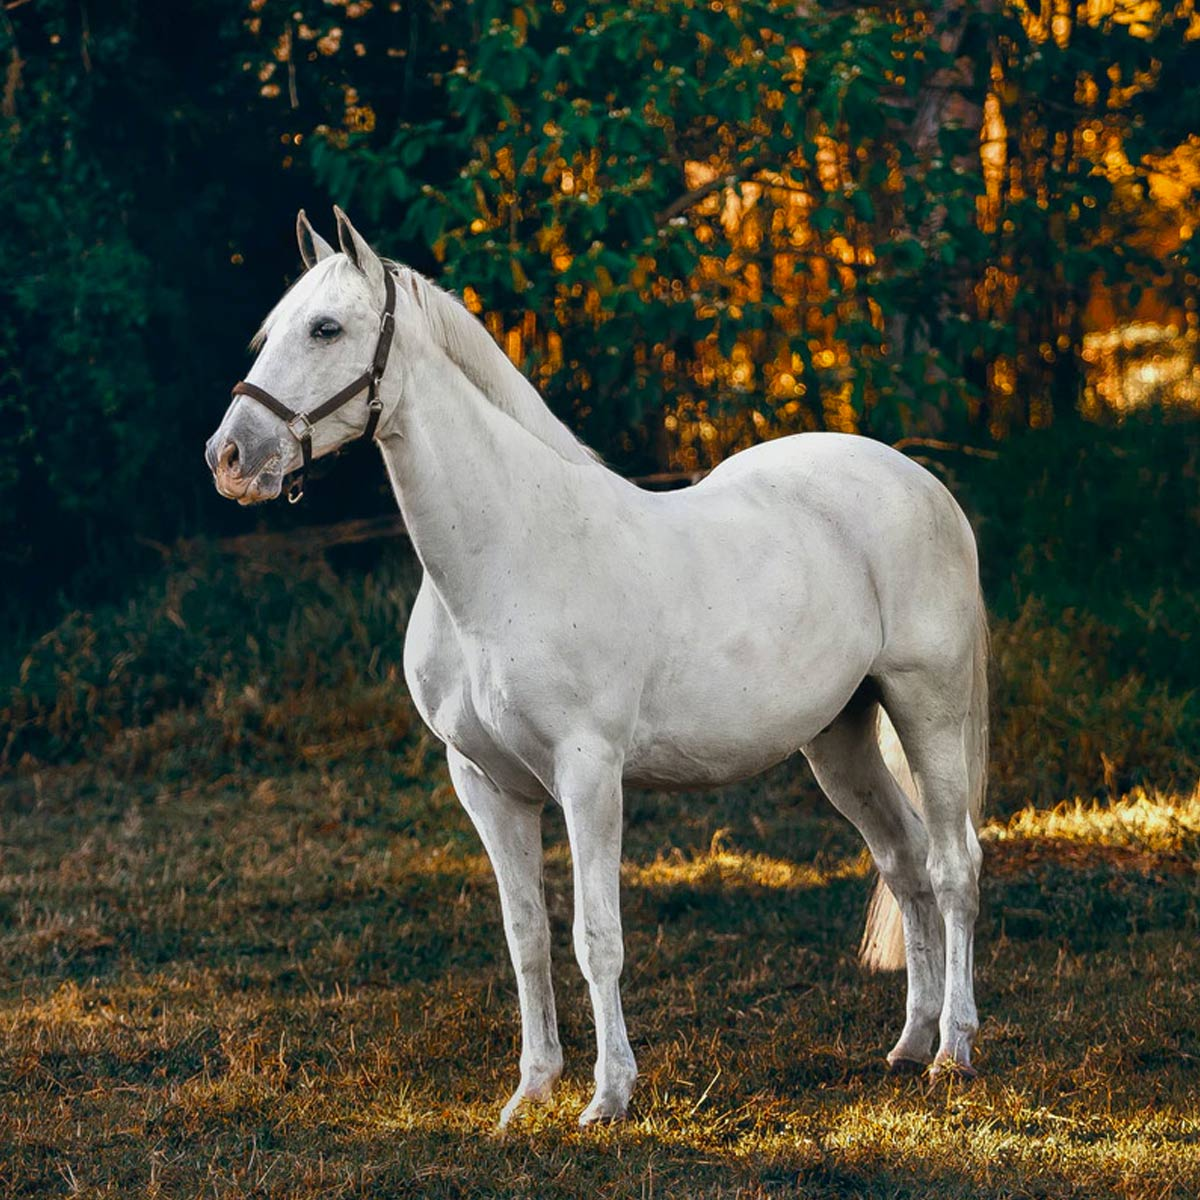 NATIONAL HORSE DAY - December 13, 2021 | National Today